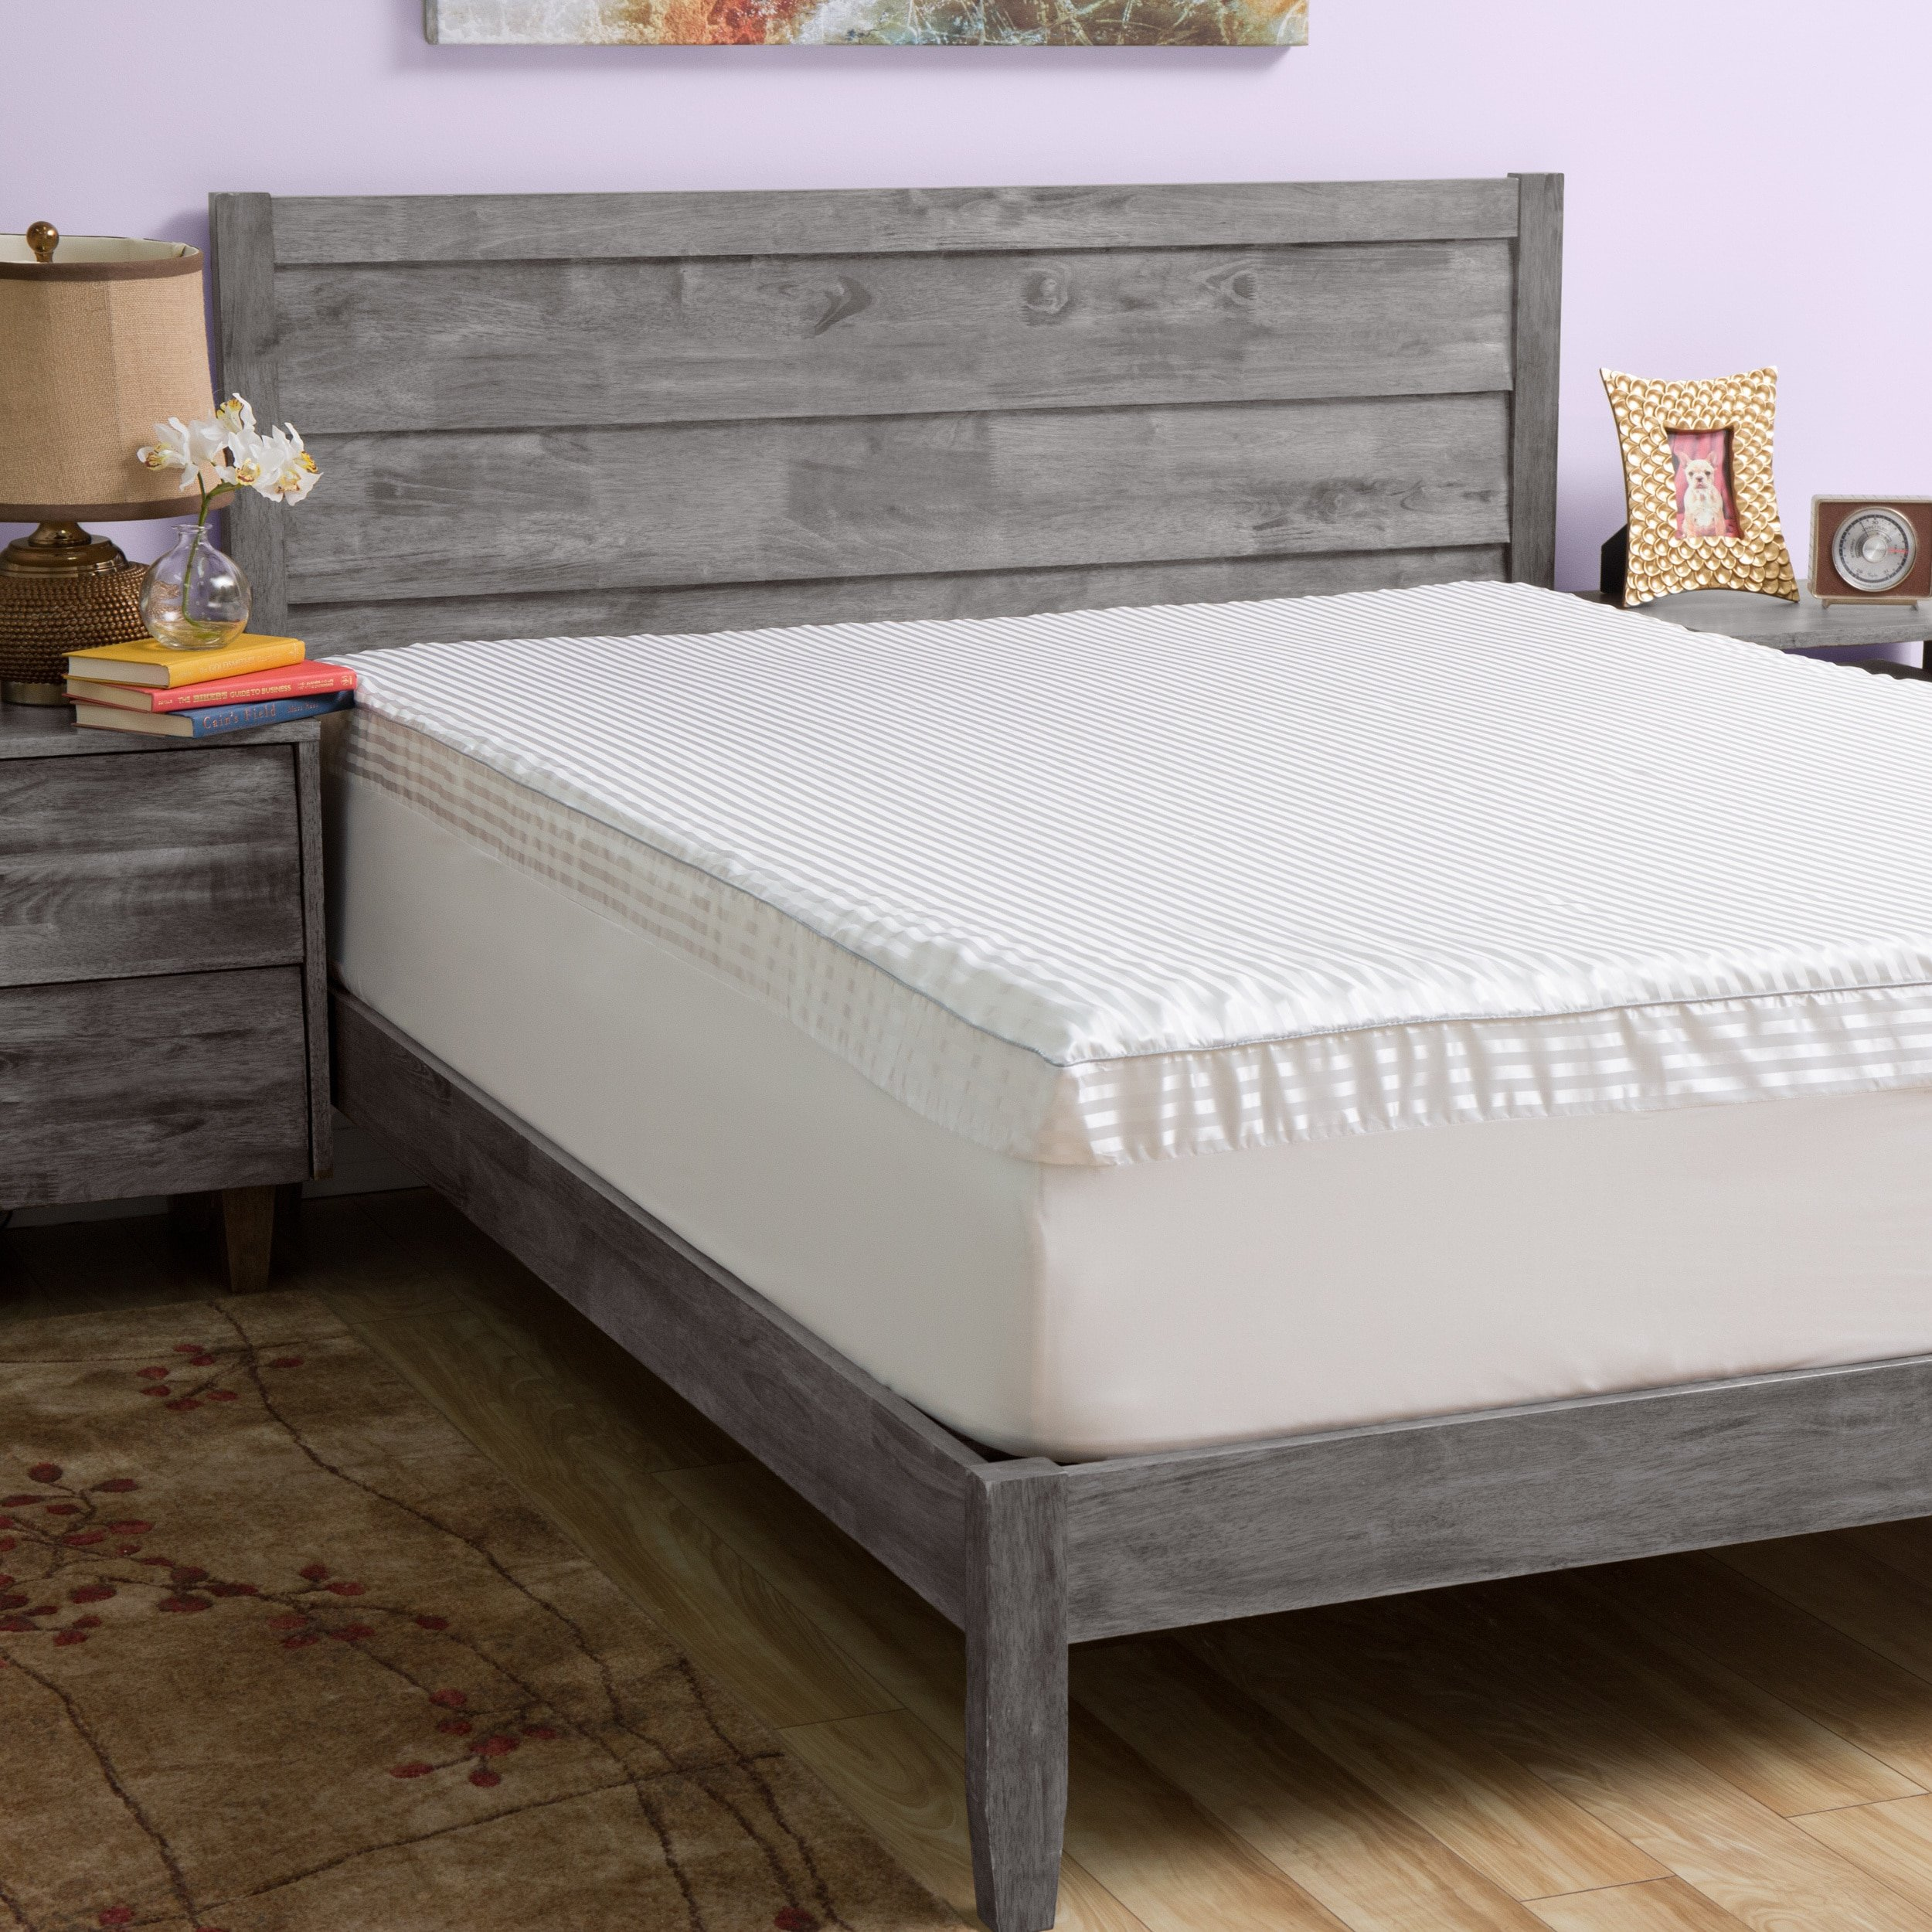 Grande Hotel Collection Big Comfort 3-inch Memory Foam Mattress Topper with Cover Queen